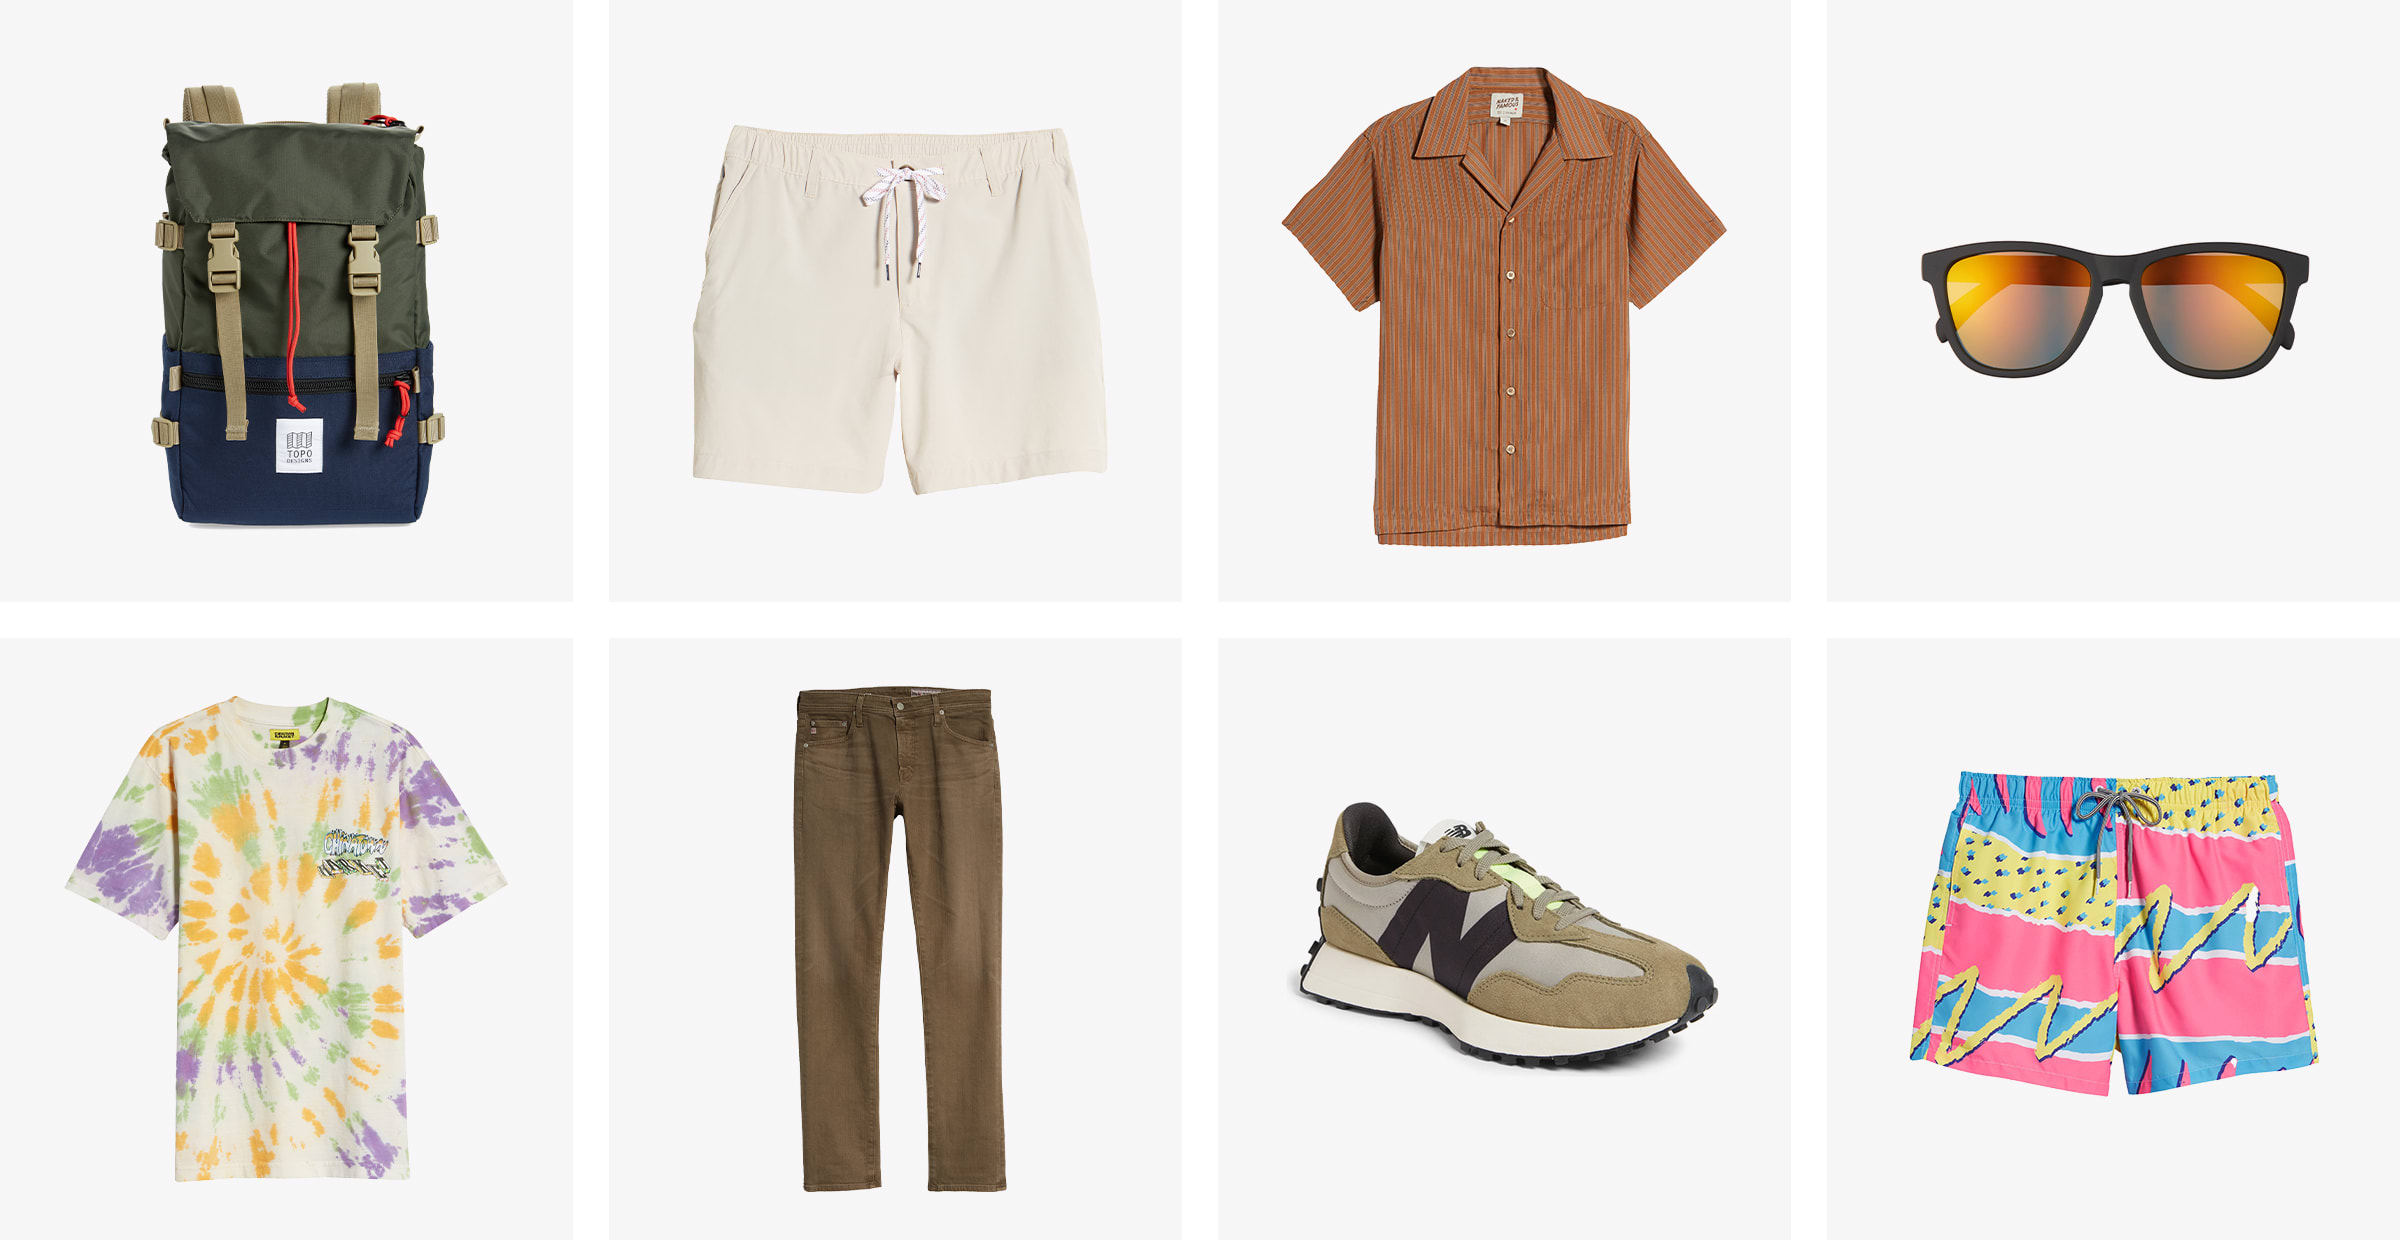 A backpack, men's shorts, button-up shirt, baseball cap, tie-dyed T-shirt, pants, sneakers and swim trunks.